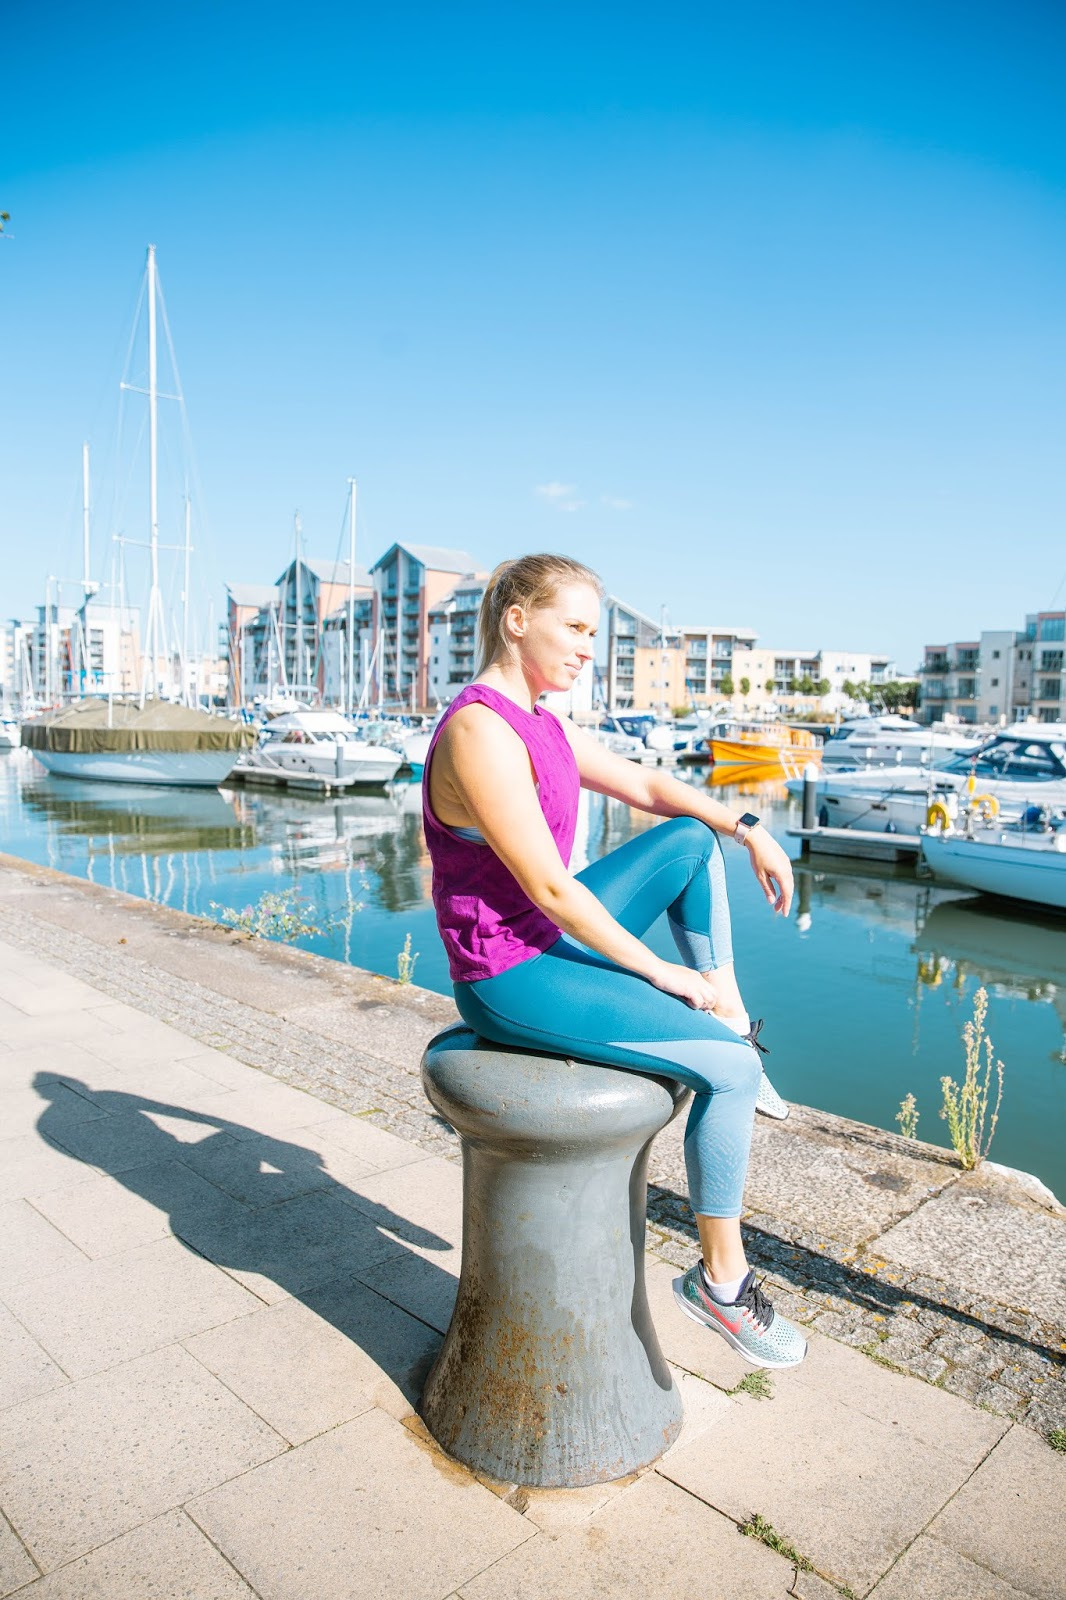 Fitness | The London Marathon Journey - Part 1 - Rachel Emily sitting in Portishead harbour in blue and purple running gear